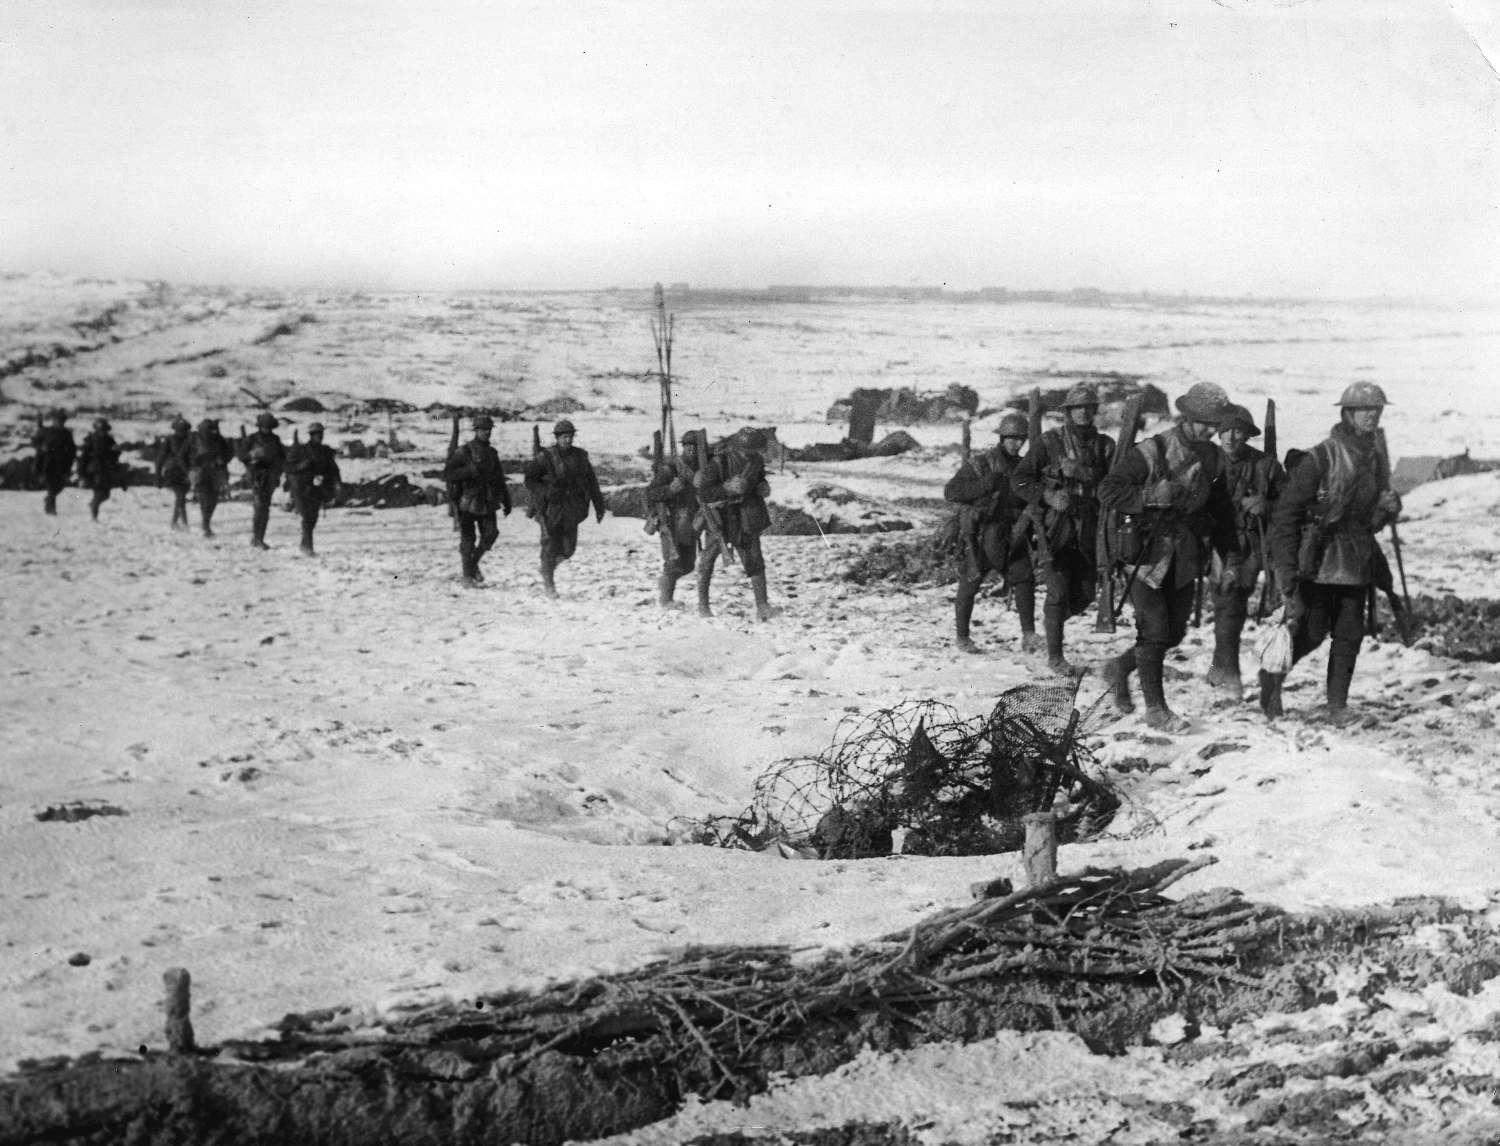 troops marching on snow